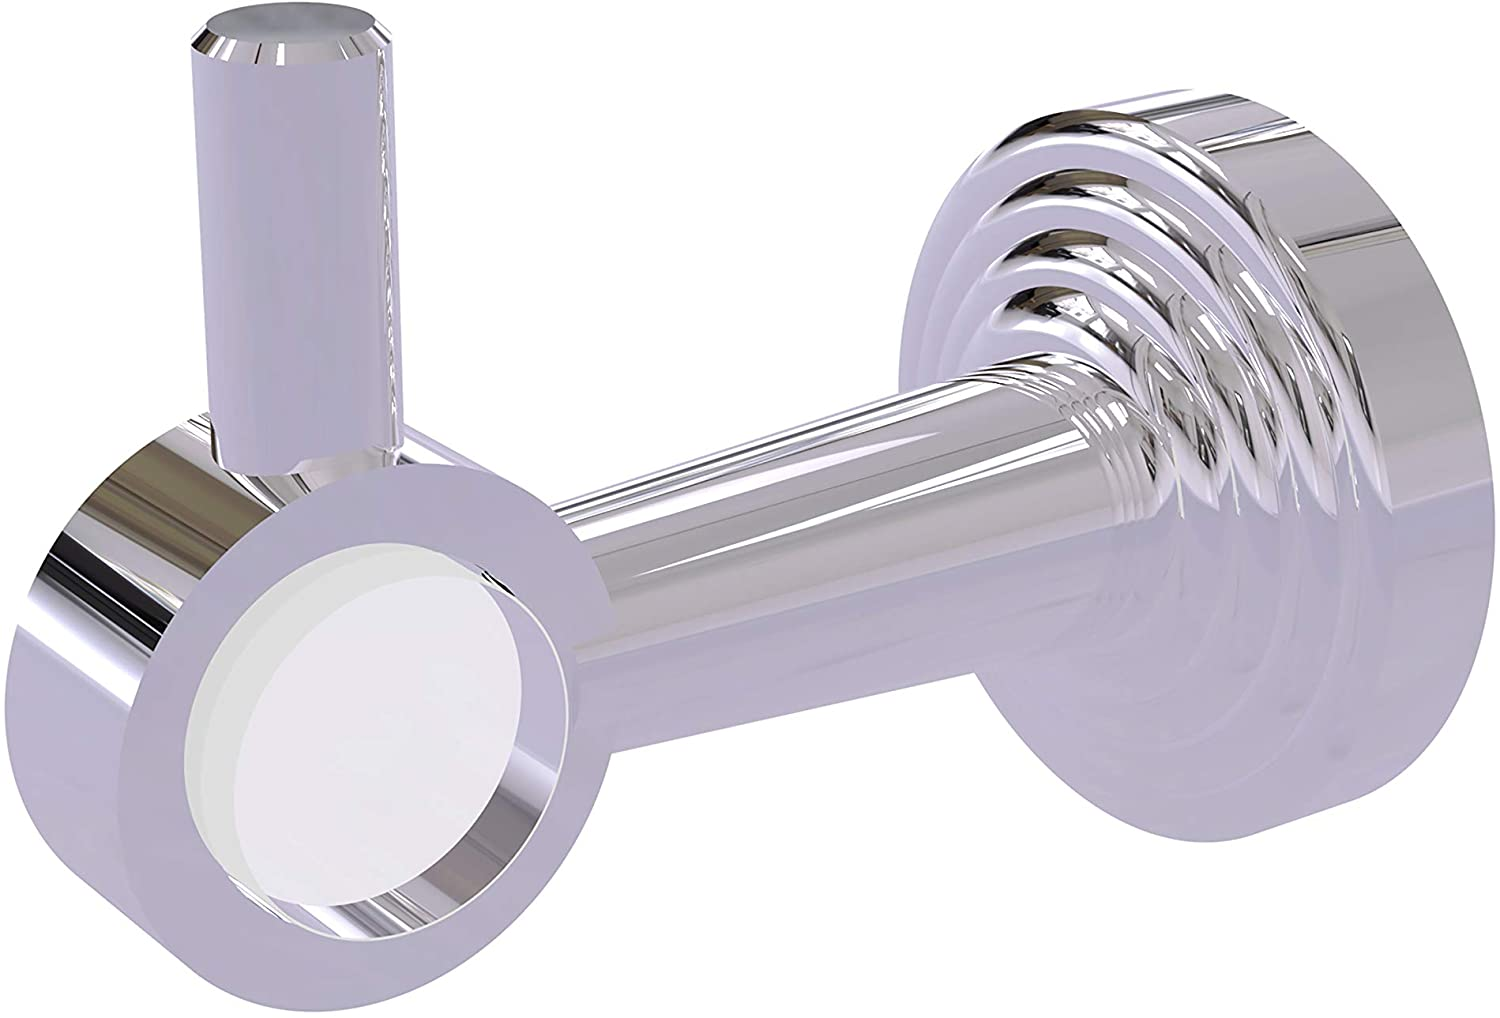 Allied Brass PB-20 Pacific Beach Collection Robe Hook, Polished Chrome